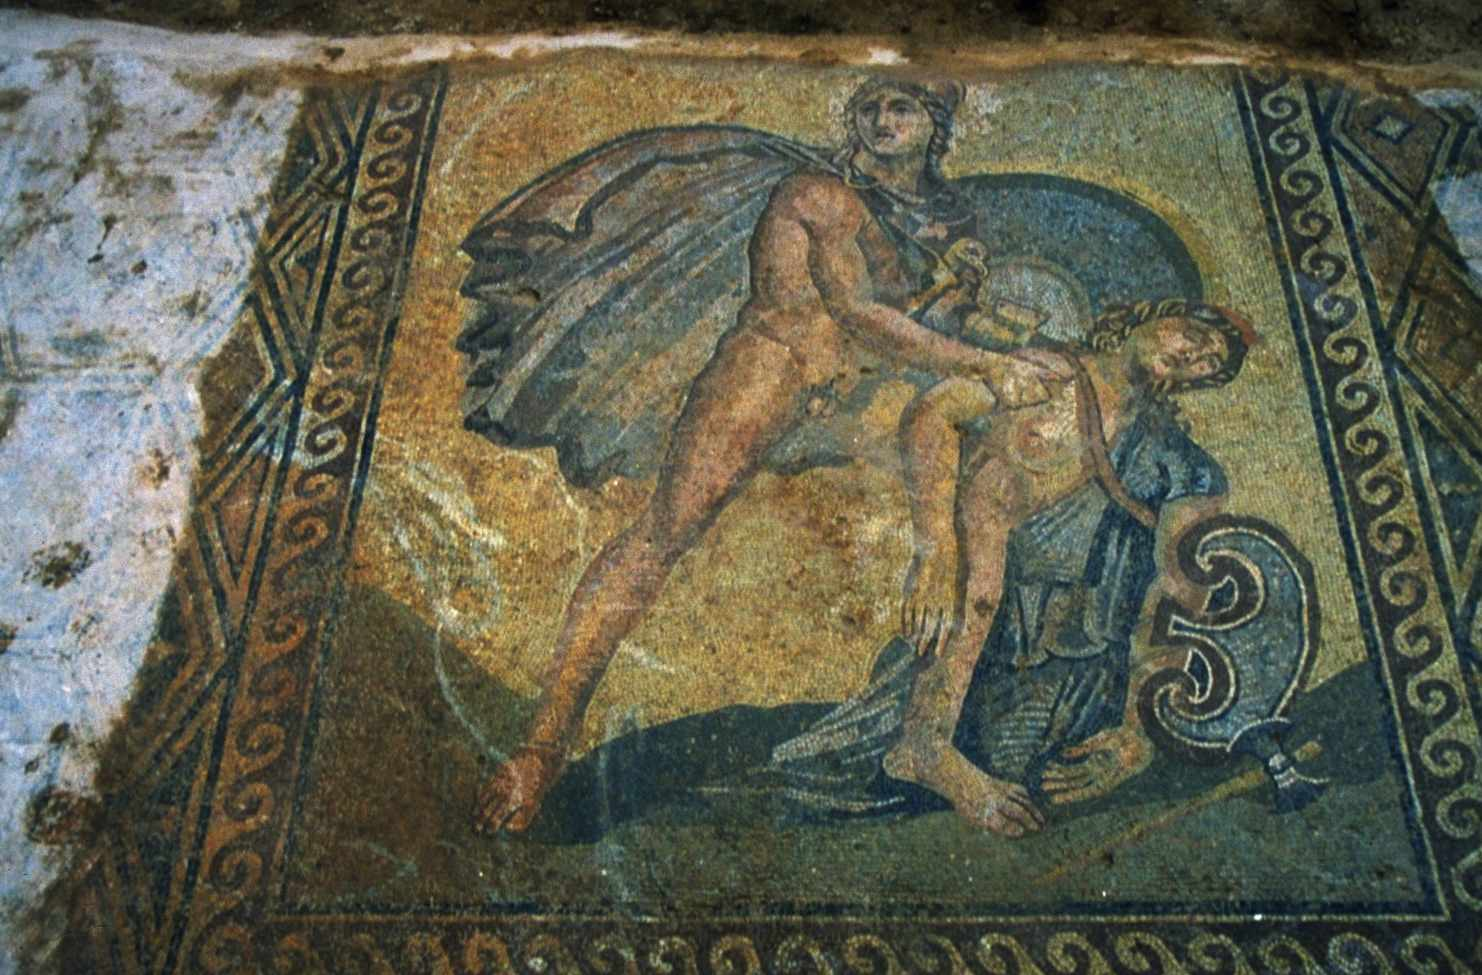 Hellenistic mosaic from the Villa of Herodes Atticus in Eva Kynourias, Greece. This mosaic portrays Achilles holding the body of Penthesilea, Queen of the Amazons, after slaying her during the Trojan War.